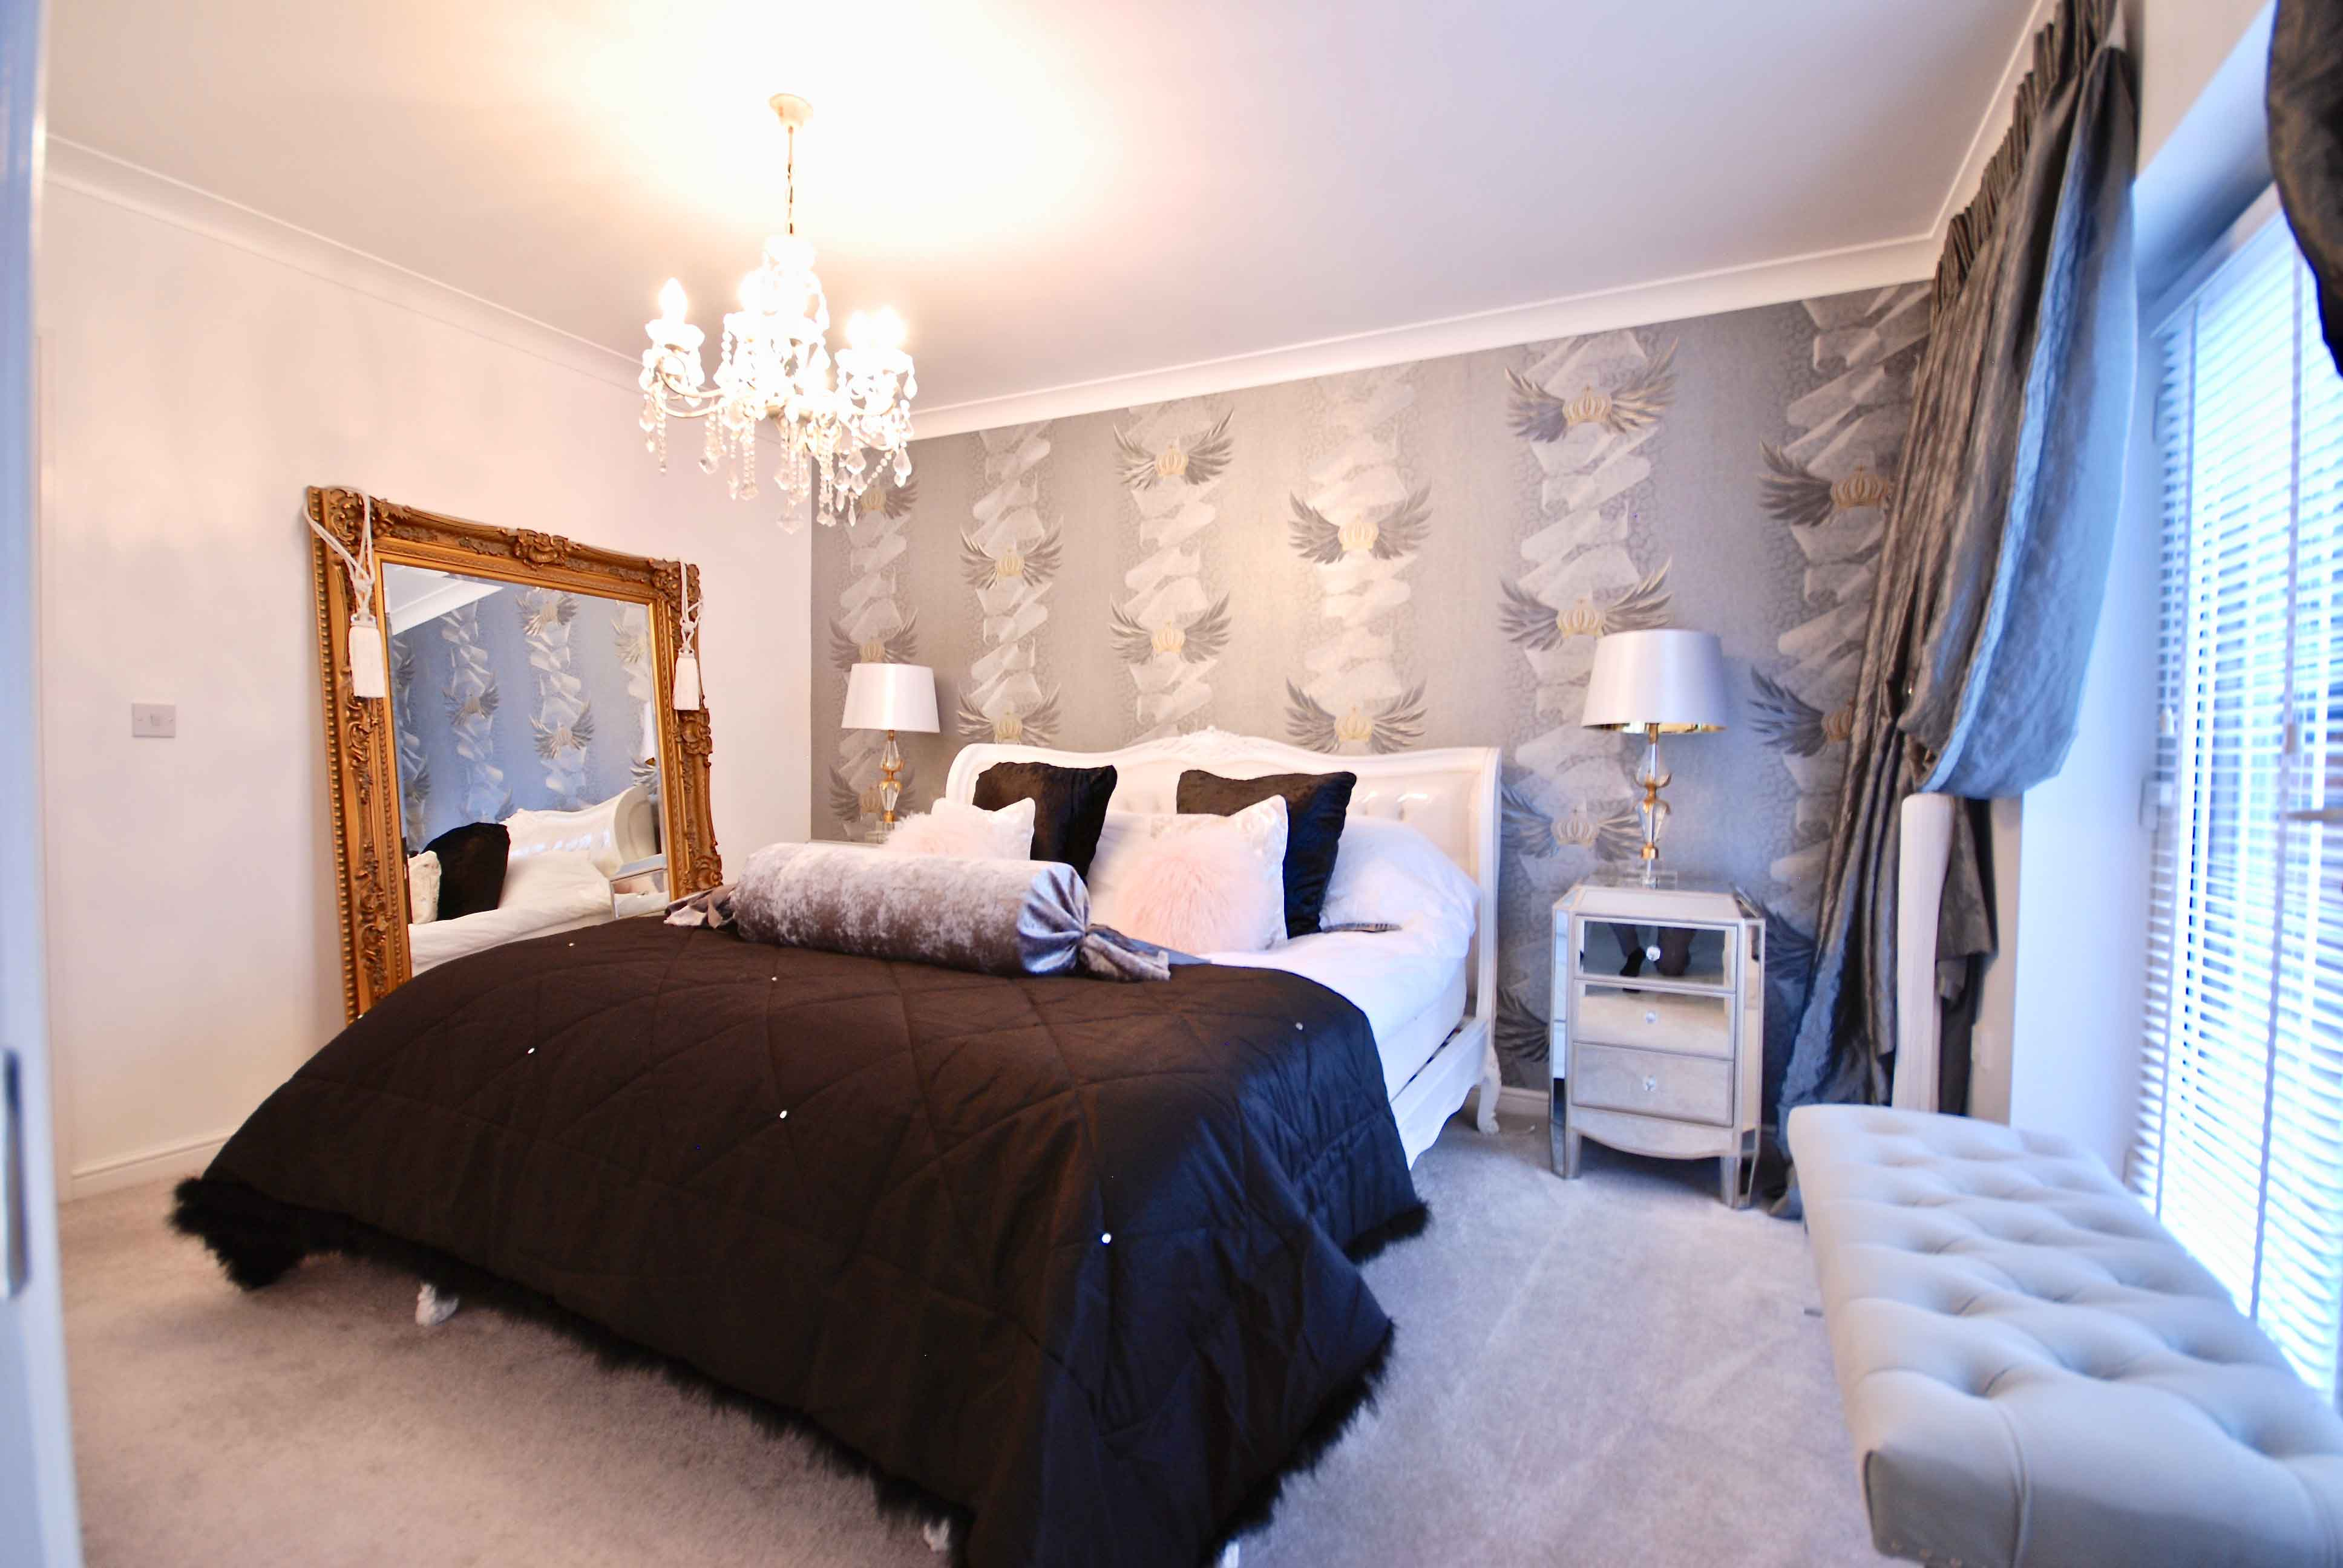 4 Bedroom House for Sale Bowden Close, Newcastle Great Park